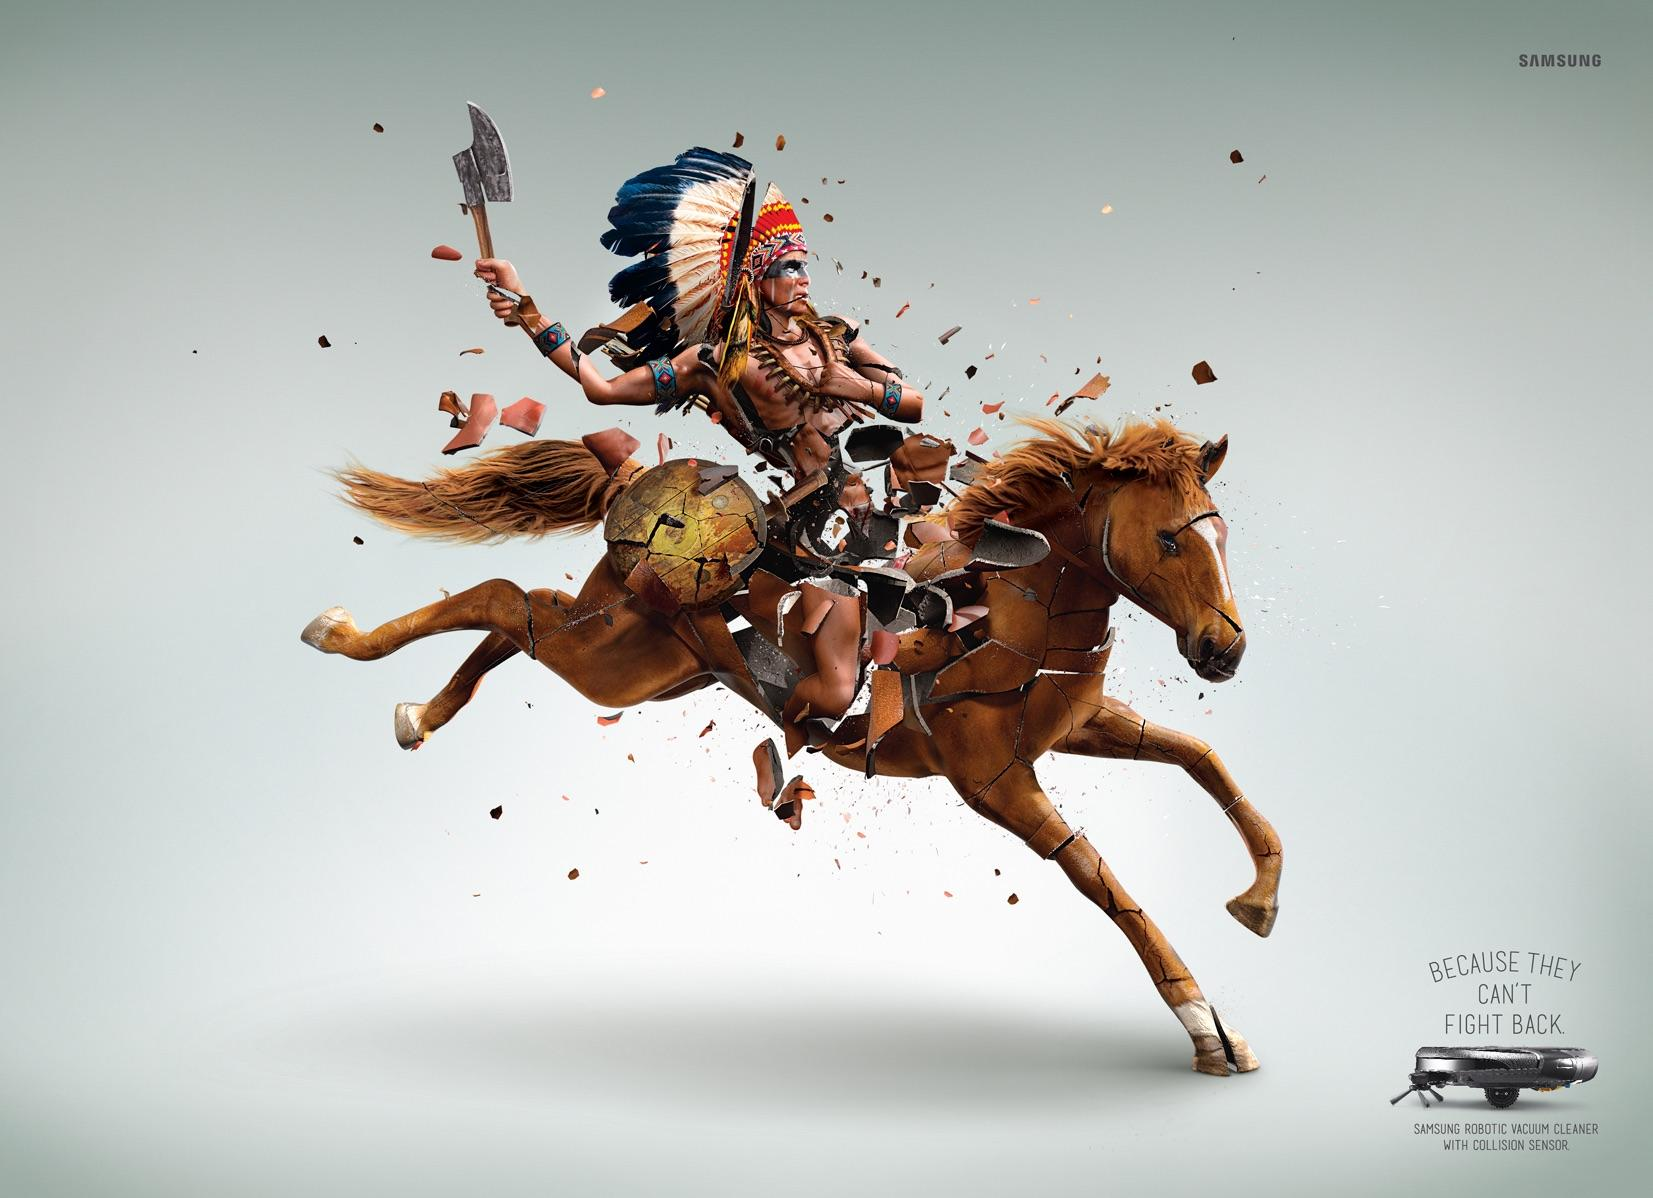 Samsung Print Ad -  Can't fight back, 1